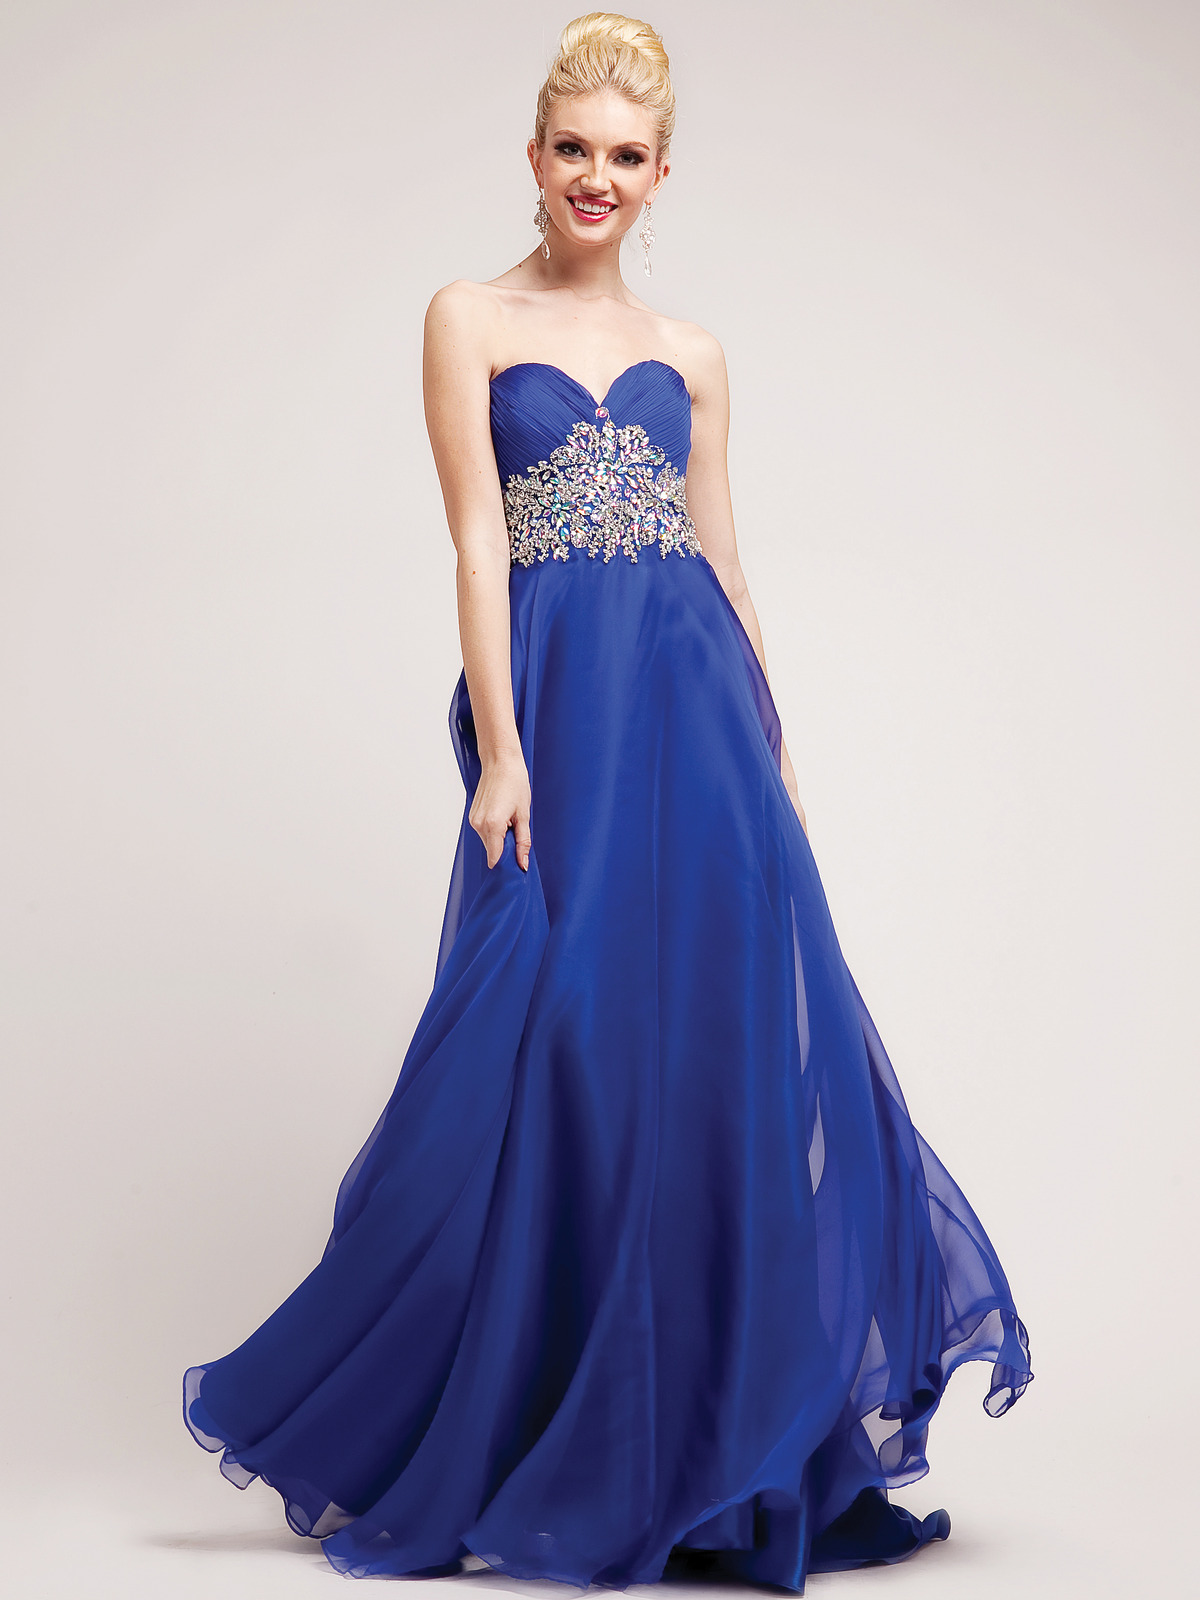 Embellished Sweetheart Empire Waist Prom Dress | Sung Boutique L.A.